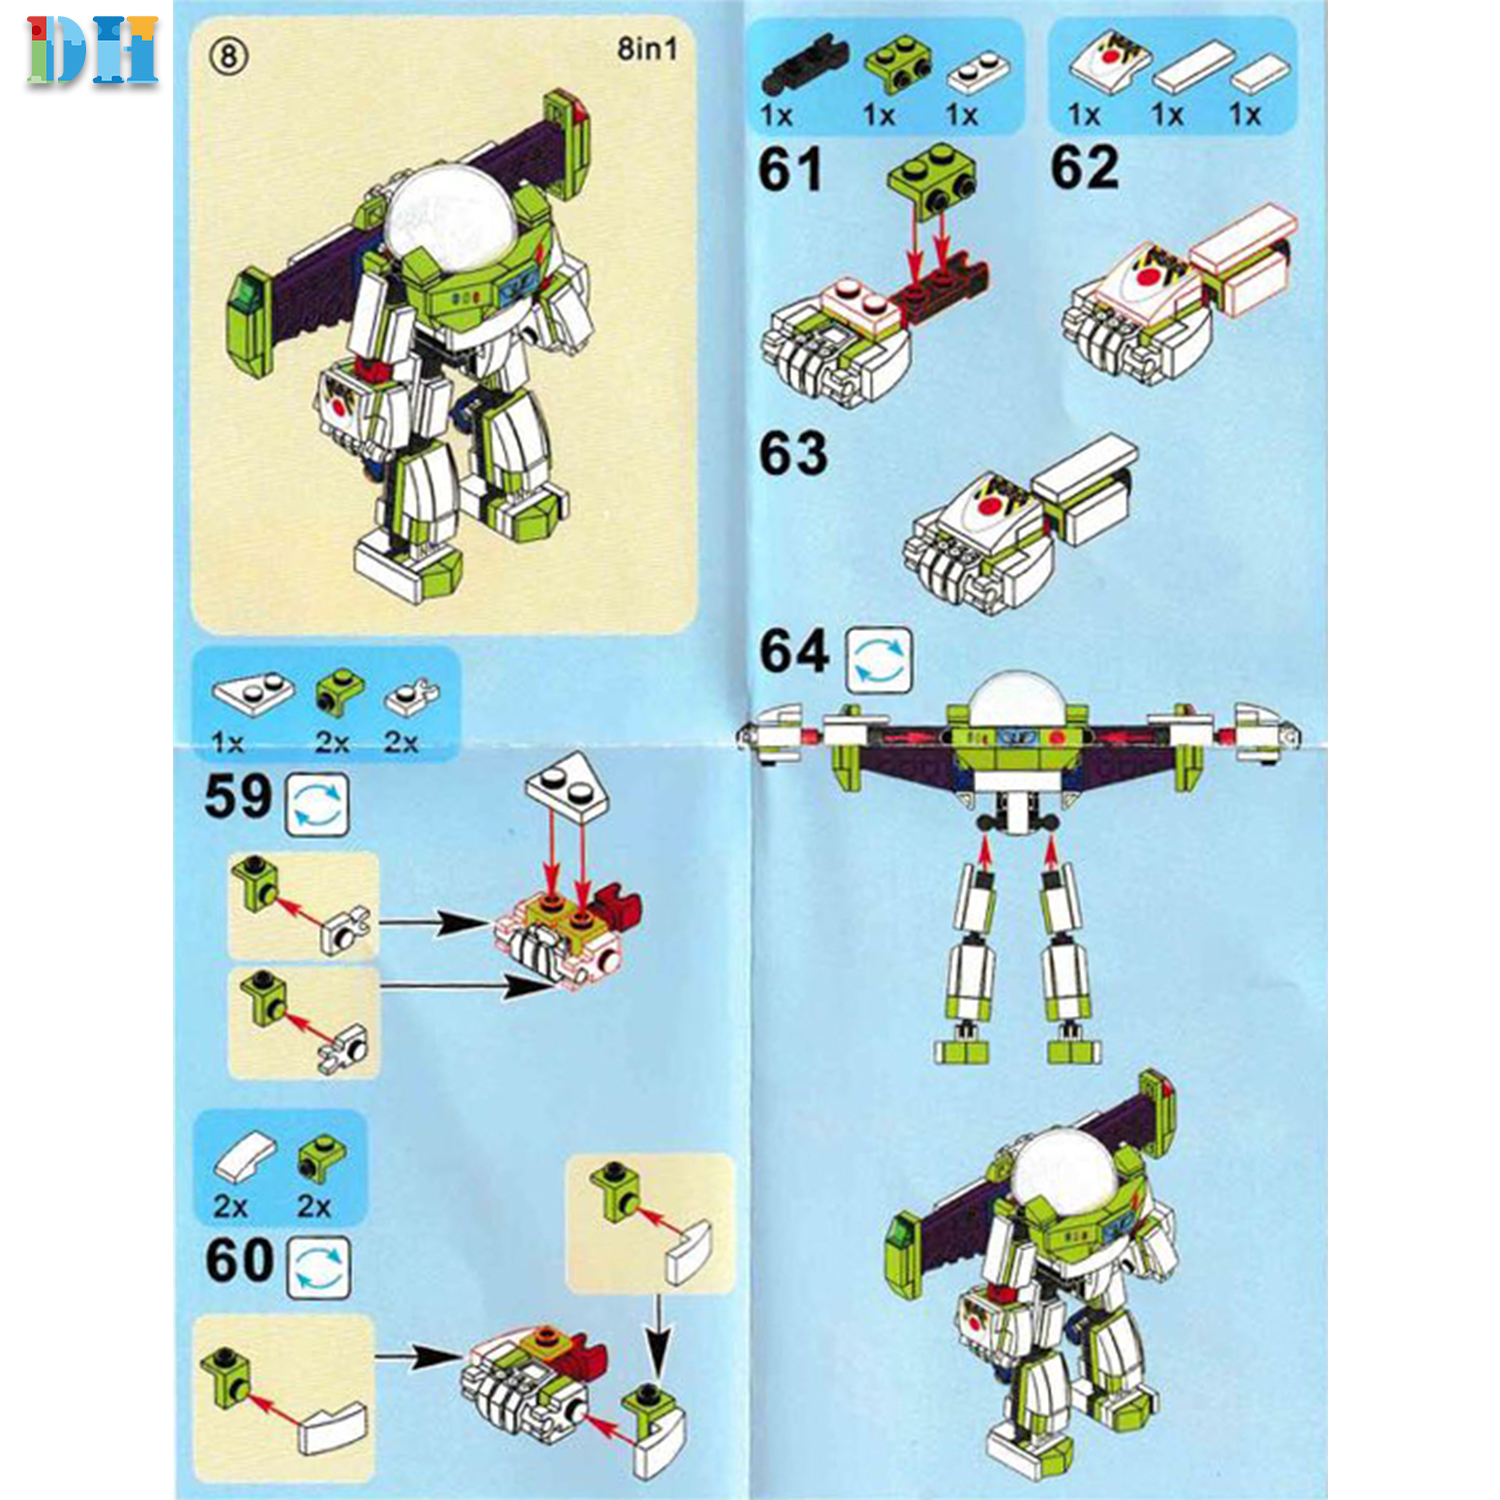 Image 5 - 8 in1 Toy Story 4 Figures Gremlins Gizmo Woody Buzz Lightyear Jessie Andy Super Mario Building Blocks Friend toys-in Blocks from Toys & Hobbies